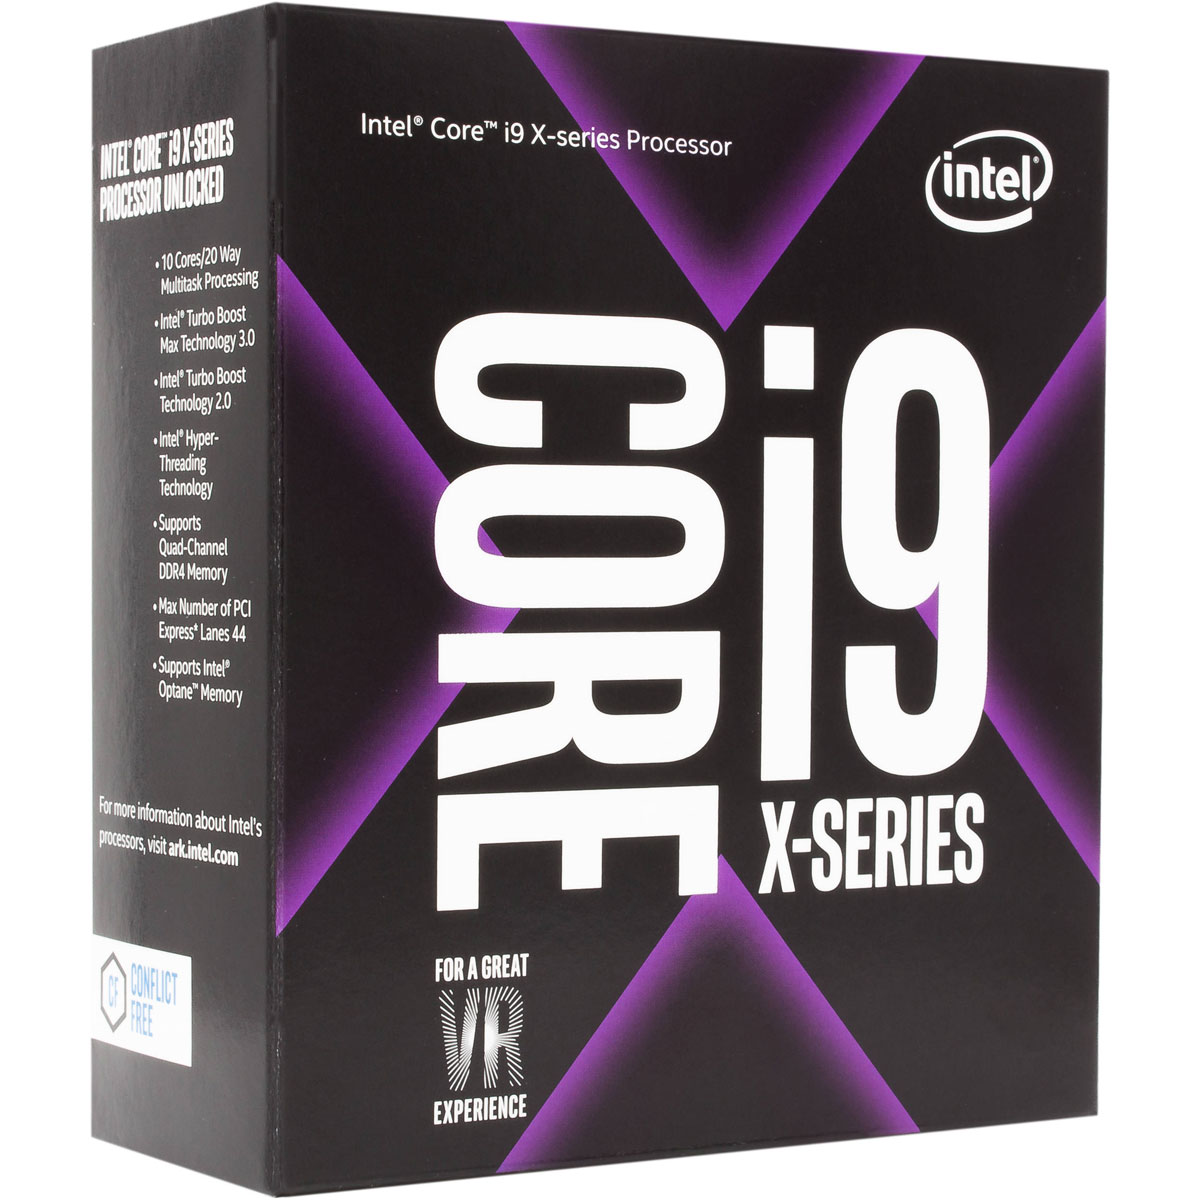 Intel Core i9 7900X X-Series Processor